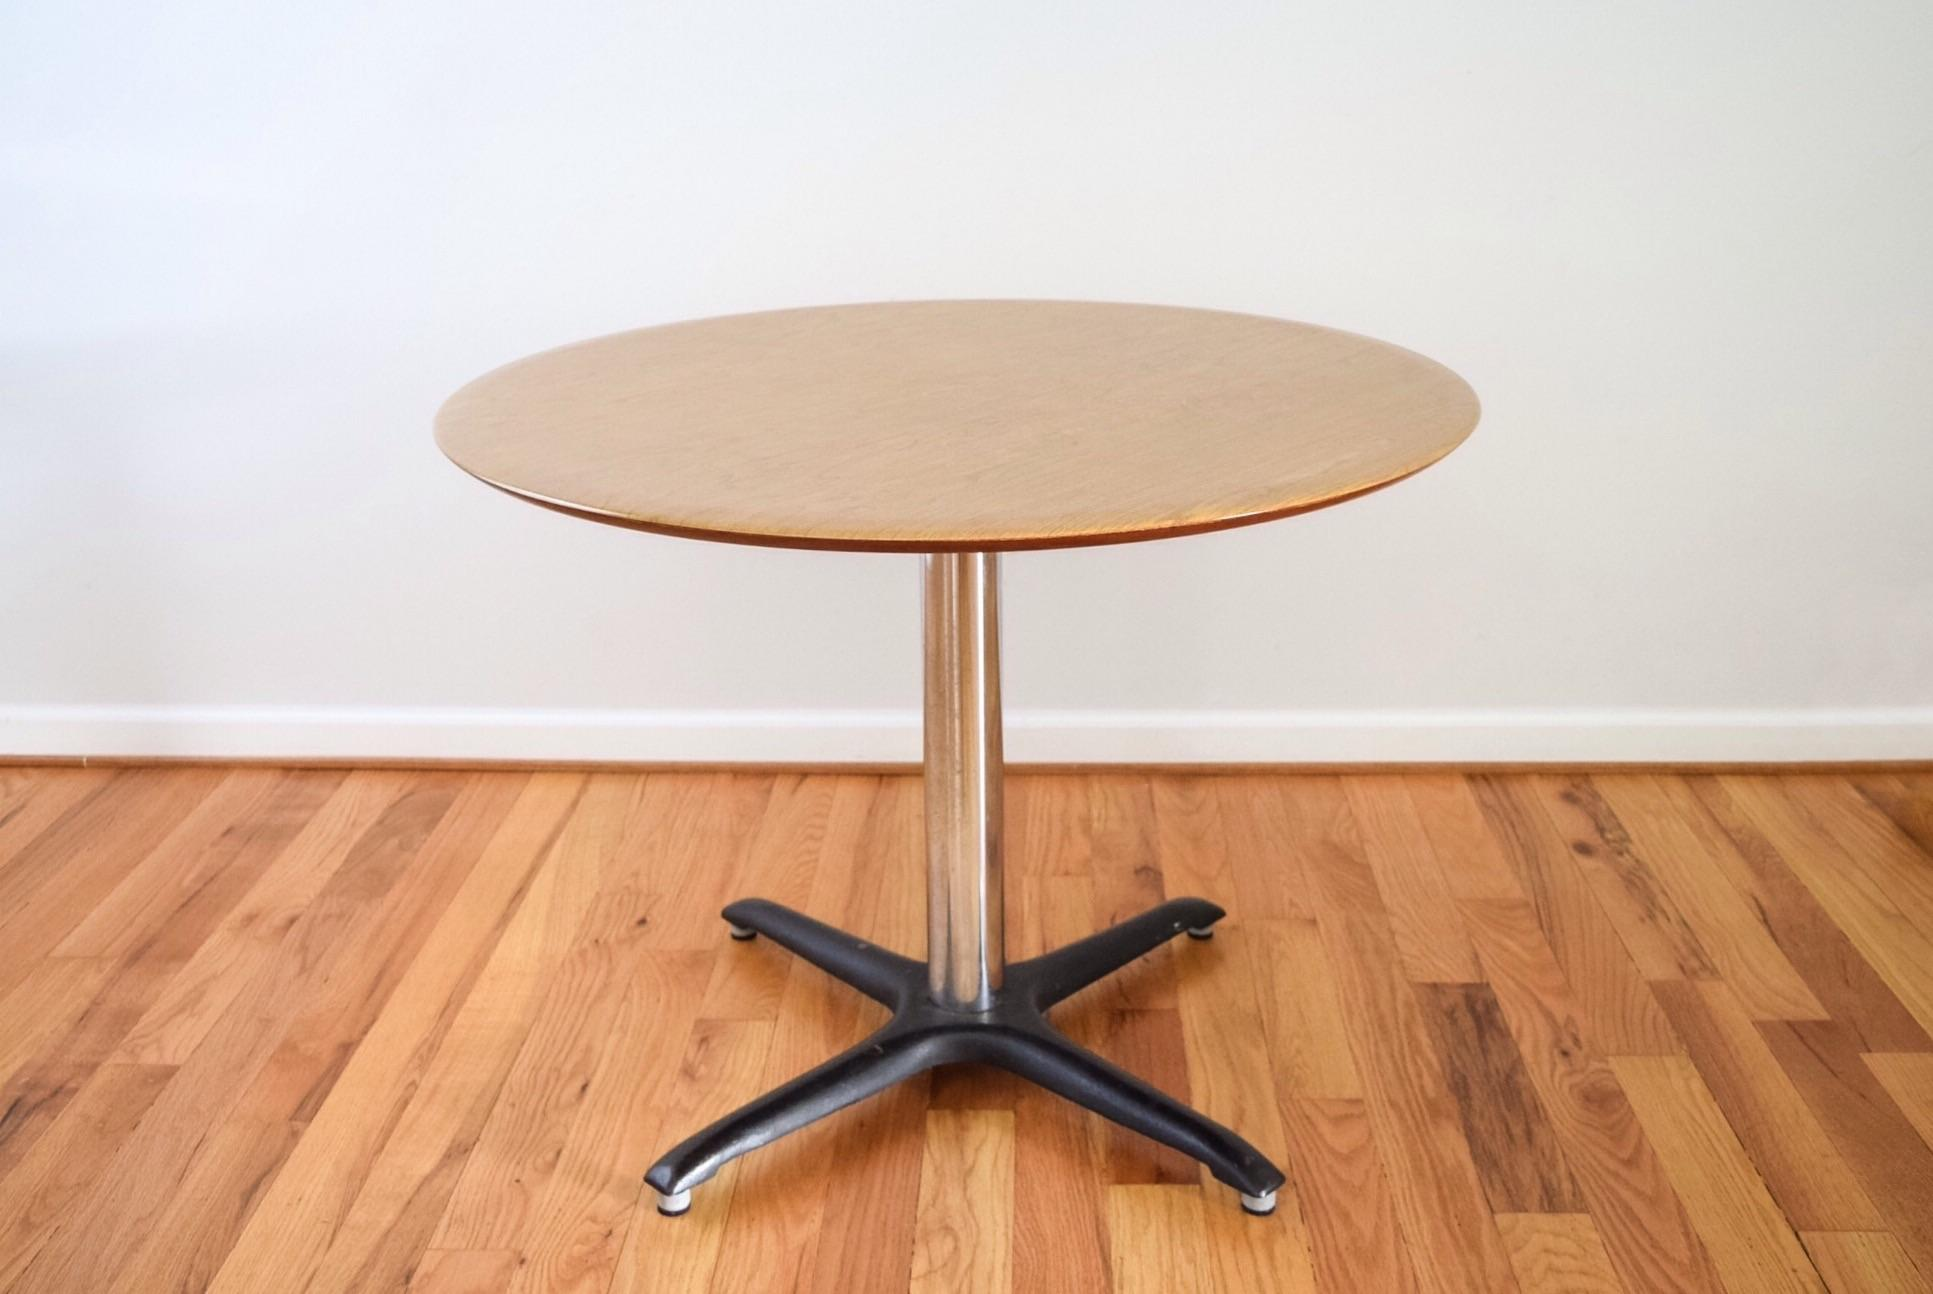 Vintage Mid Century Modern Saarinen Style Table. Faux Wood Grain Laminate  Tabletop With Chrome Stem